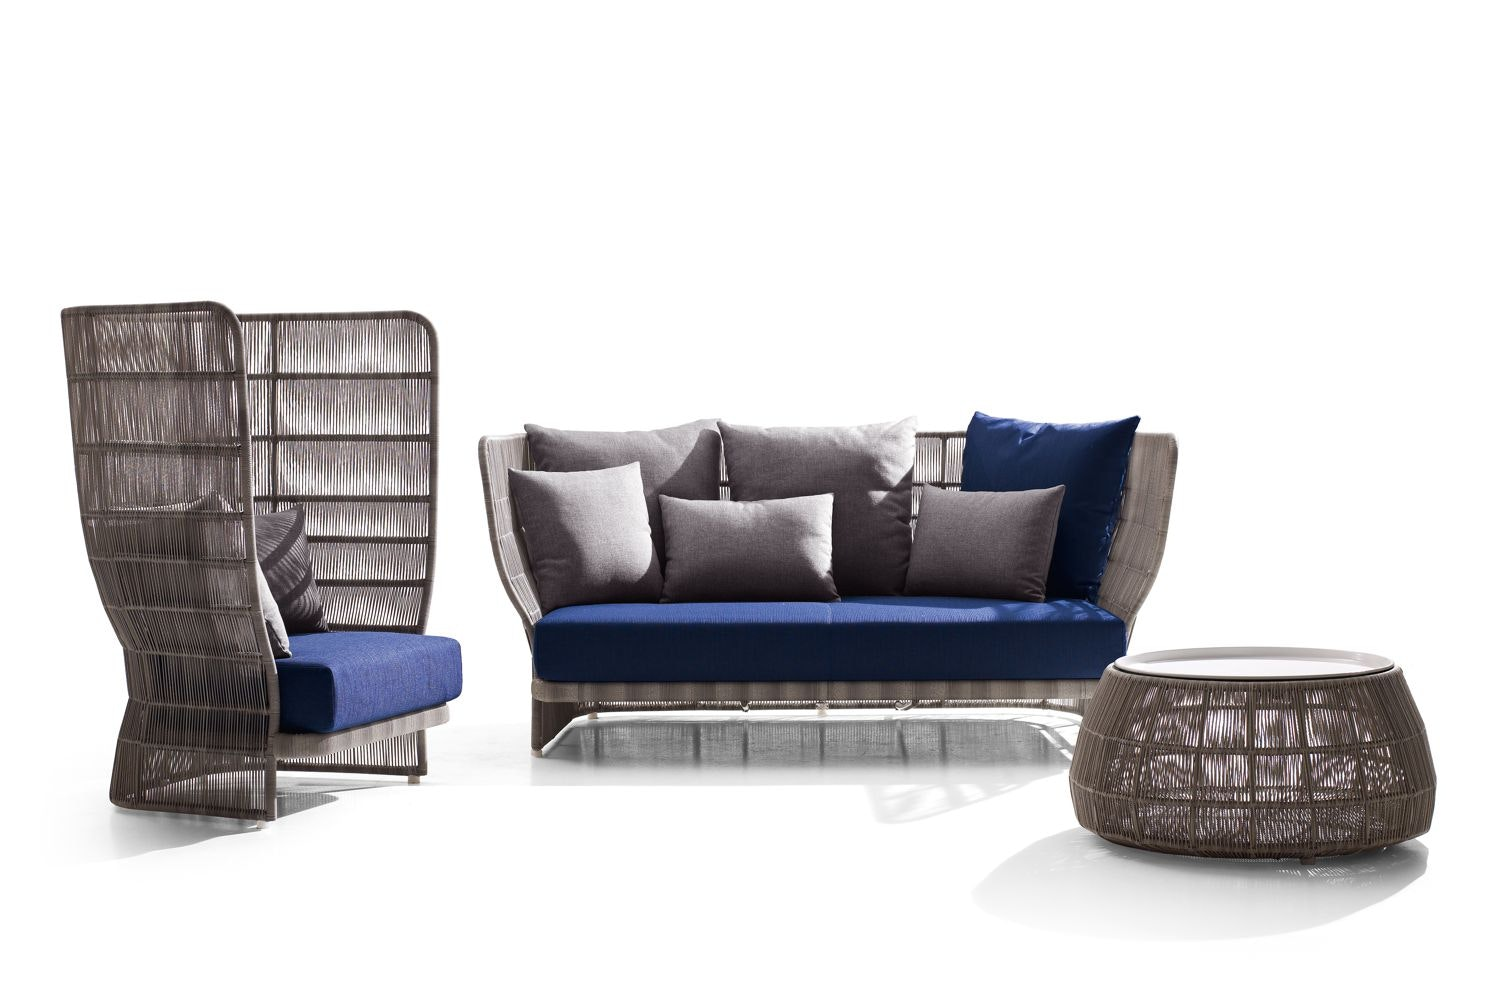 Canasta '13 Sofa by Patricia Urquiola for B&B Italia